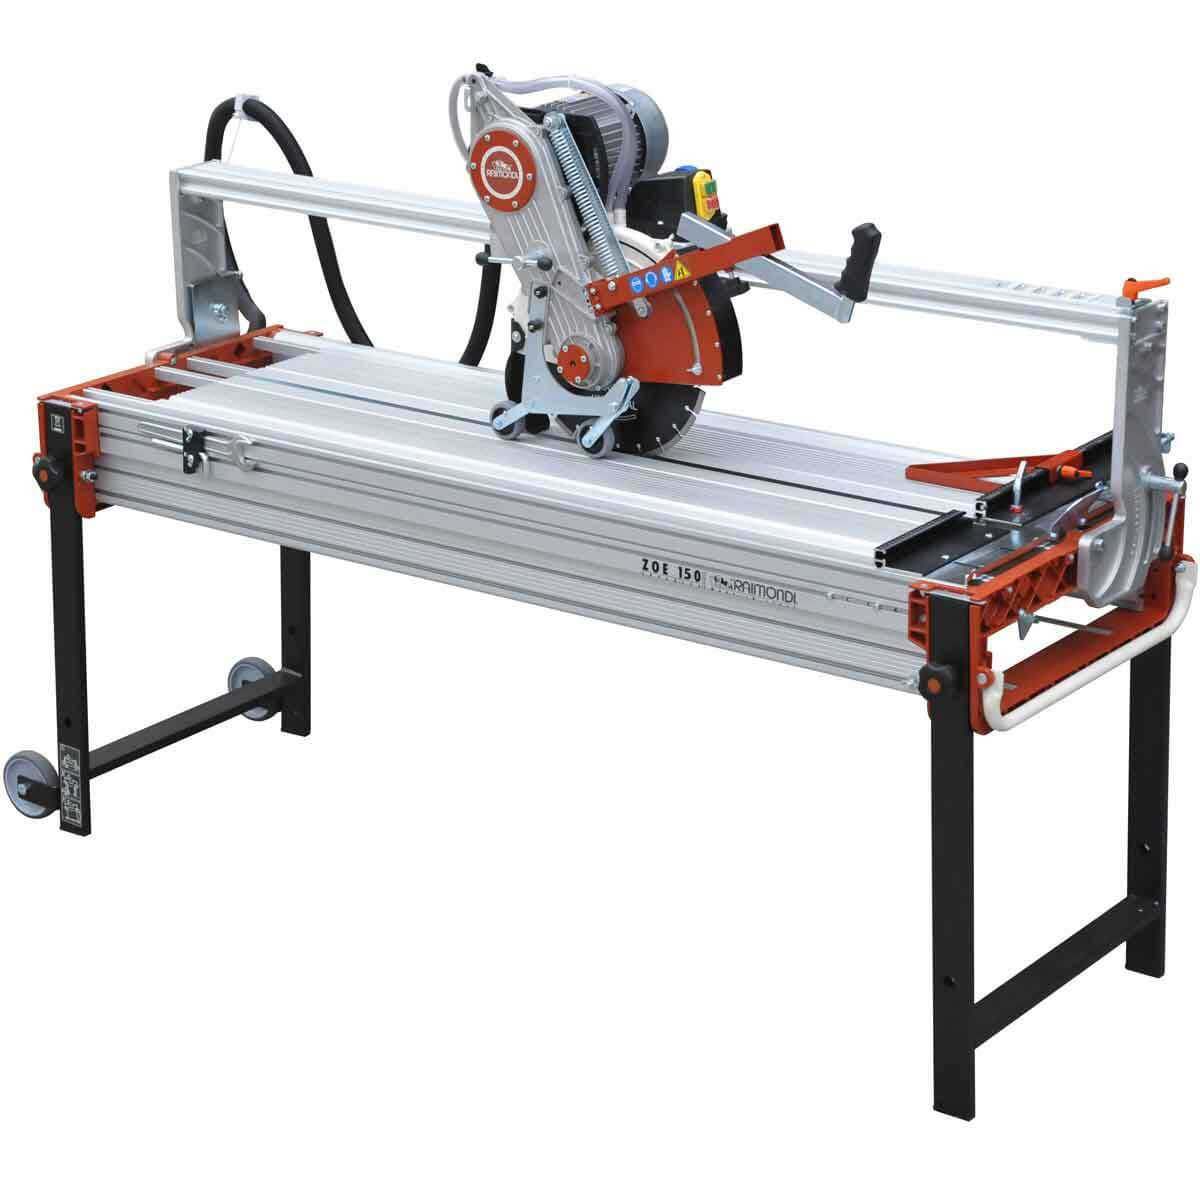 Raimondi Zipper Advanced 150 Rail Saw